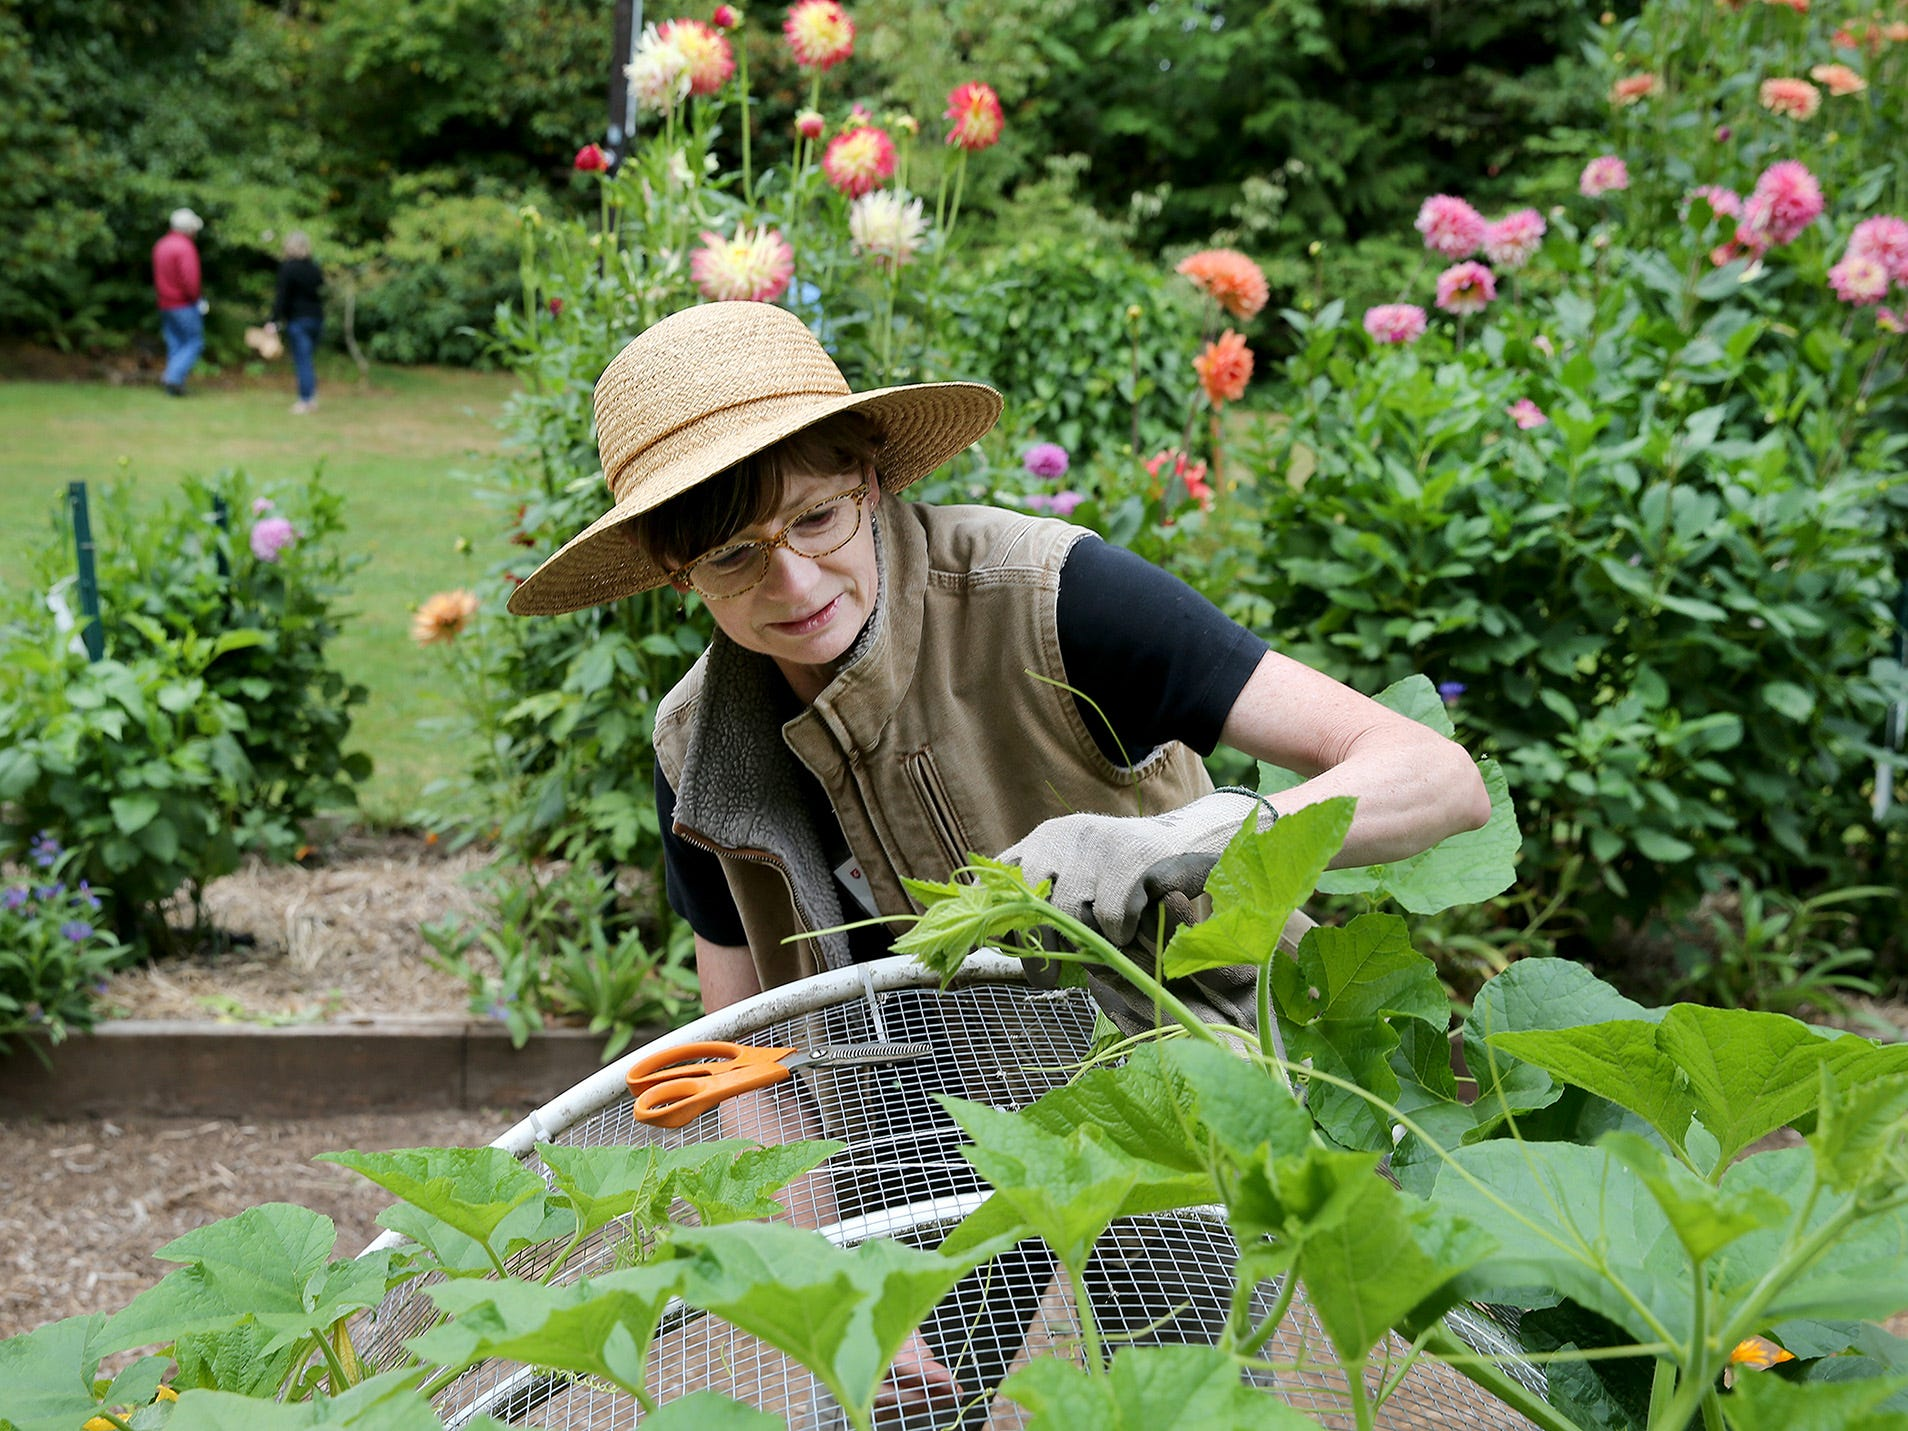 Linda Treflinger, of the WSU Master Gardener Program, works at Anna Smith Garden on Saturday, August 4, 2018. Master Gardeners from the WSU Extension were there to answer questions and help children.